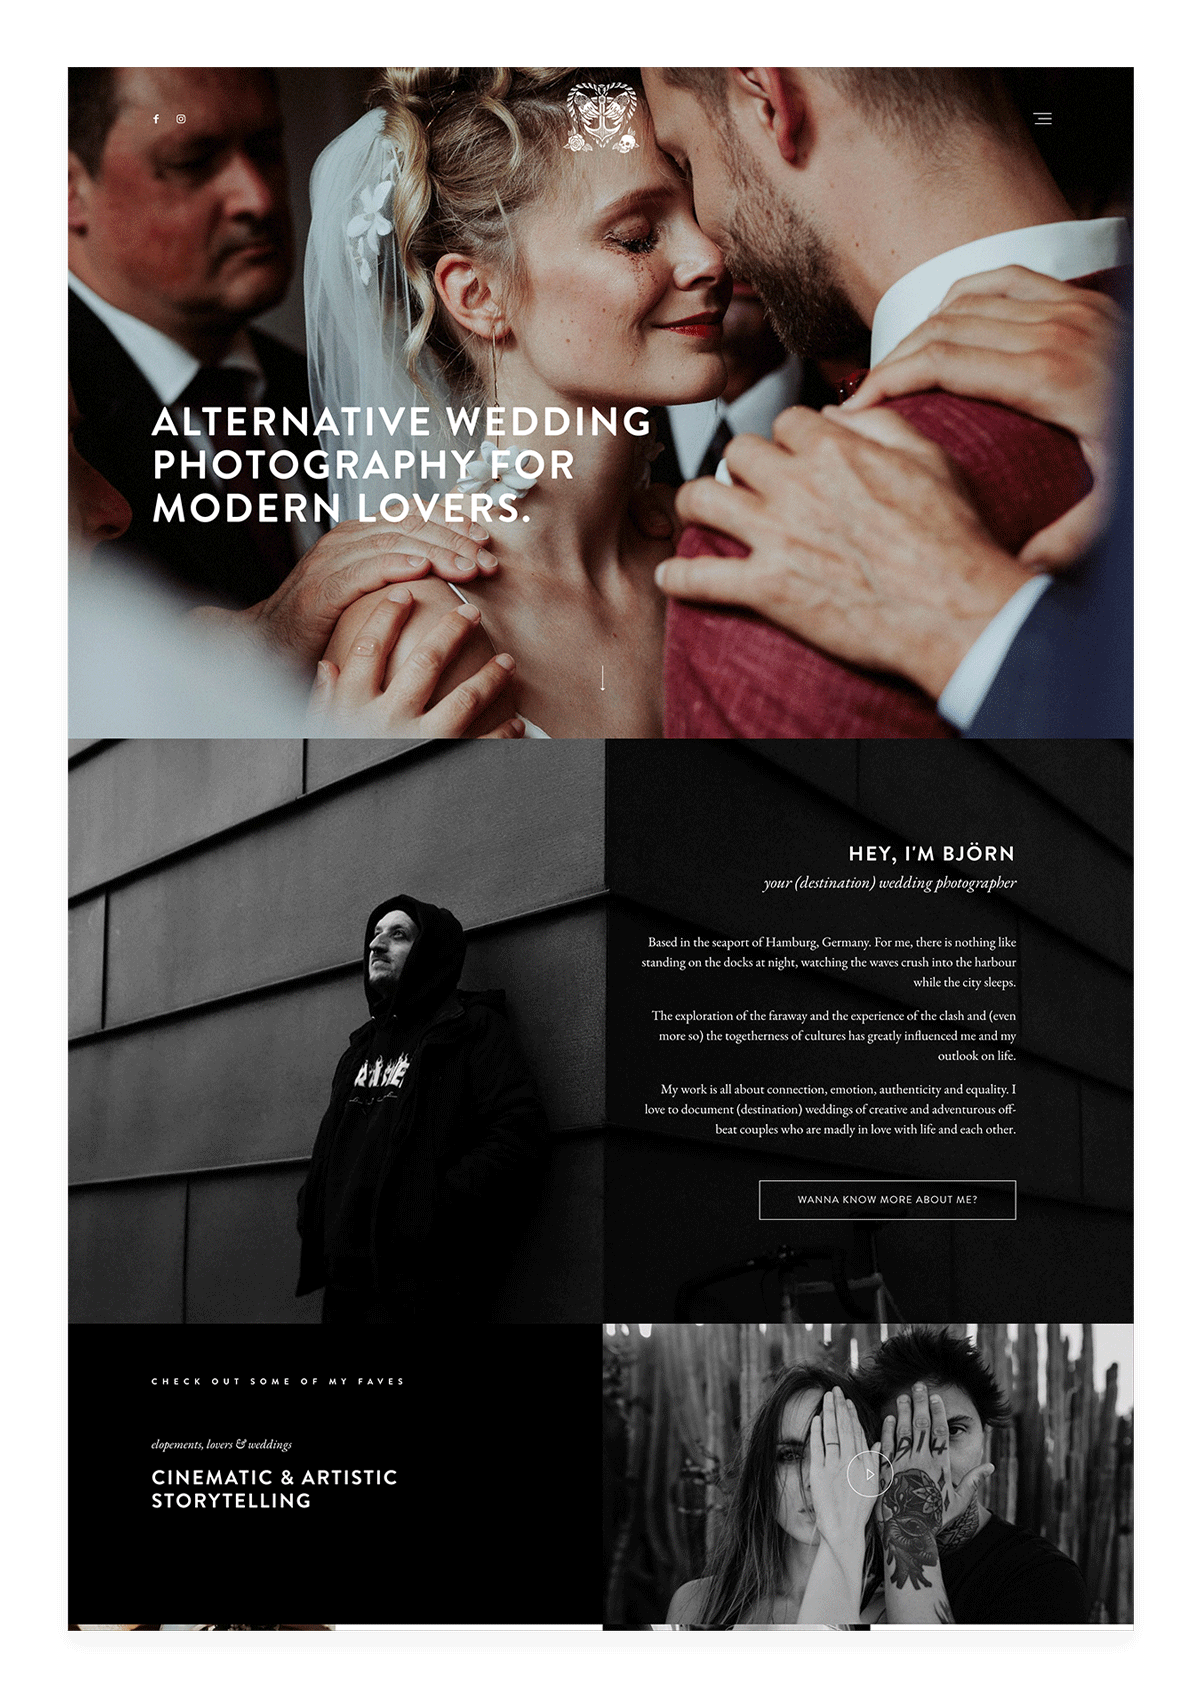 inspirational-photography-websites---alternative-wedding-photography---hafenliebe-weddings